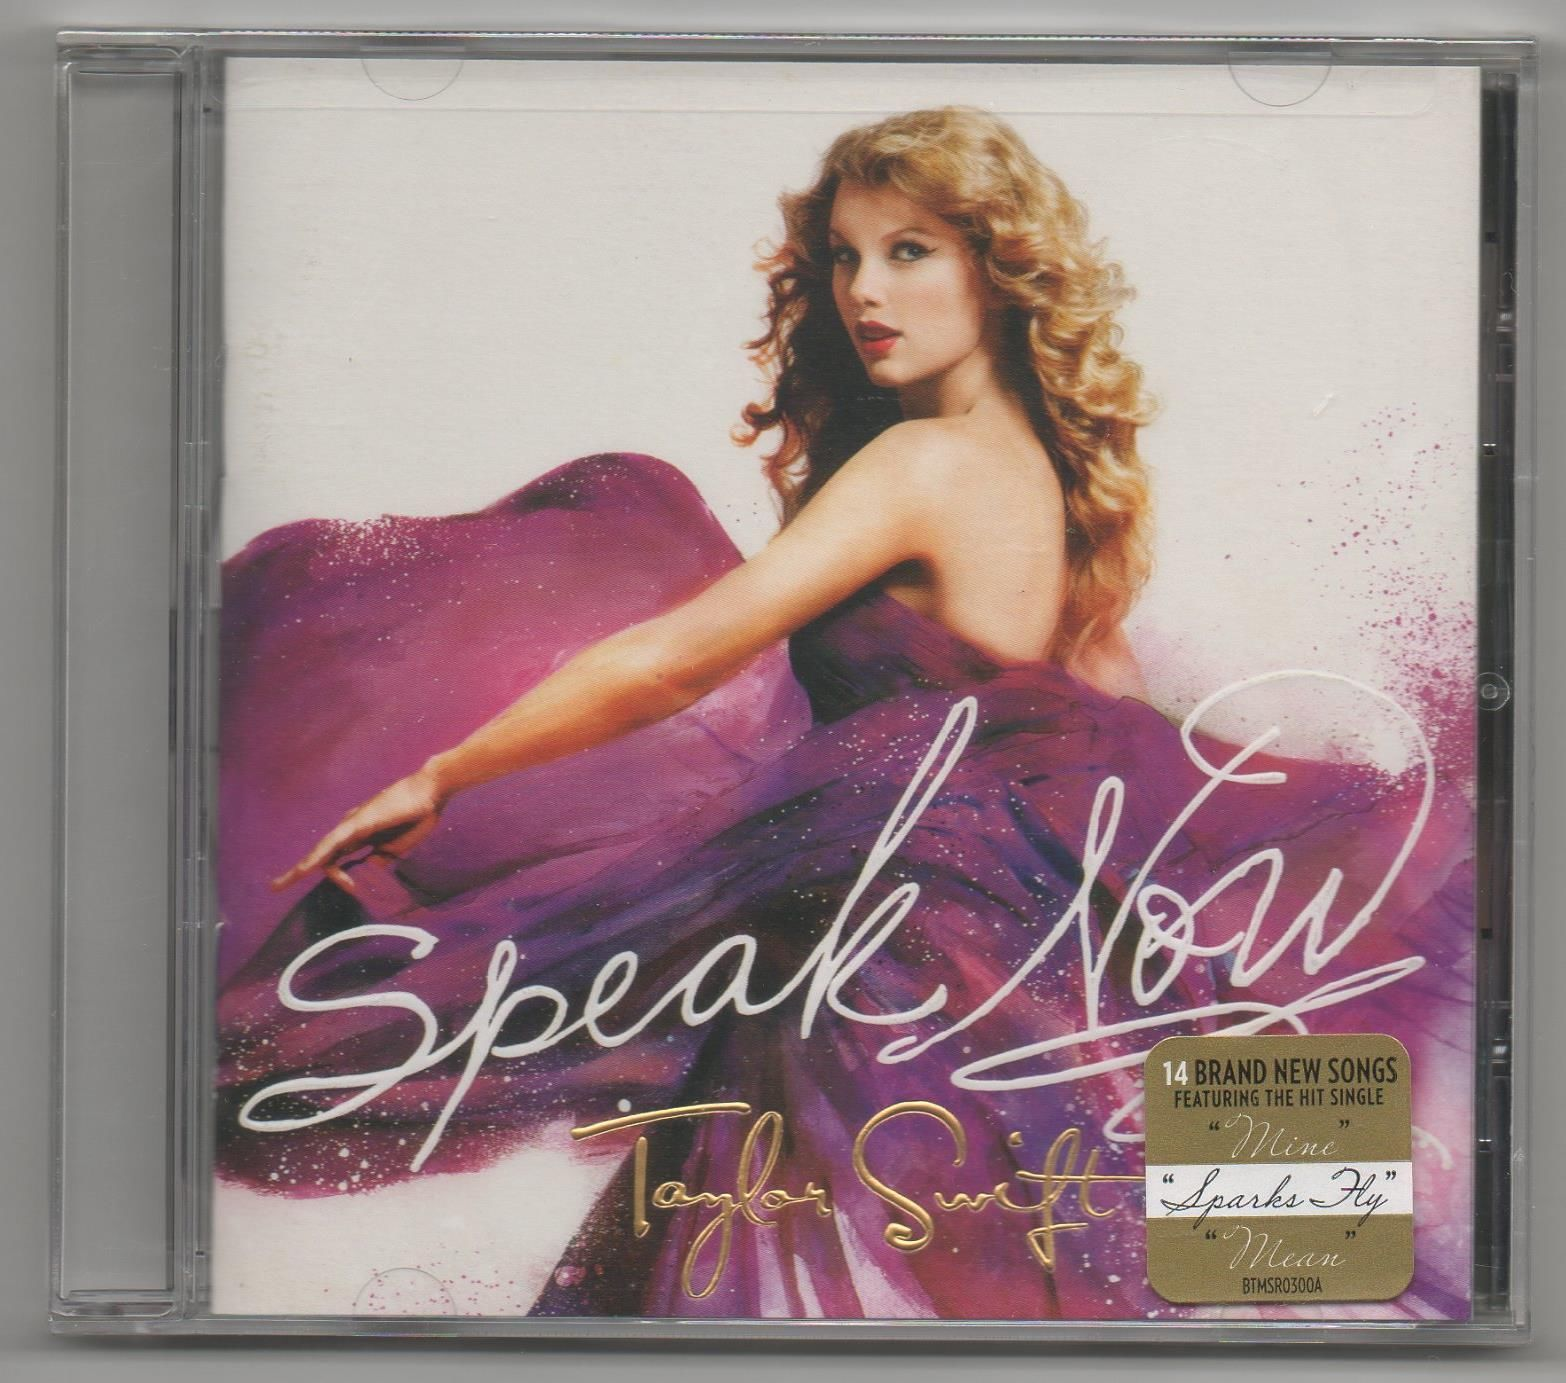 Primary image for Taylor Swift Speak Now 2010 CD Mean , Story of us, Back To December, Ours